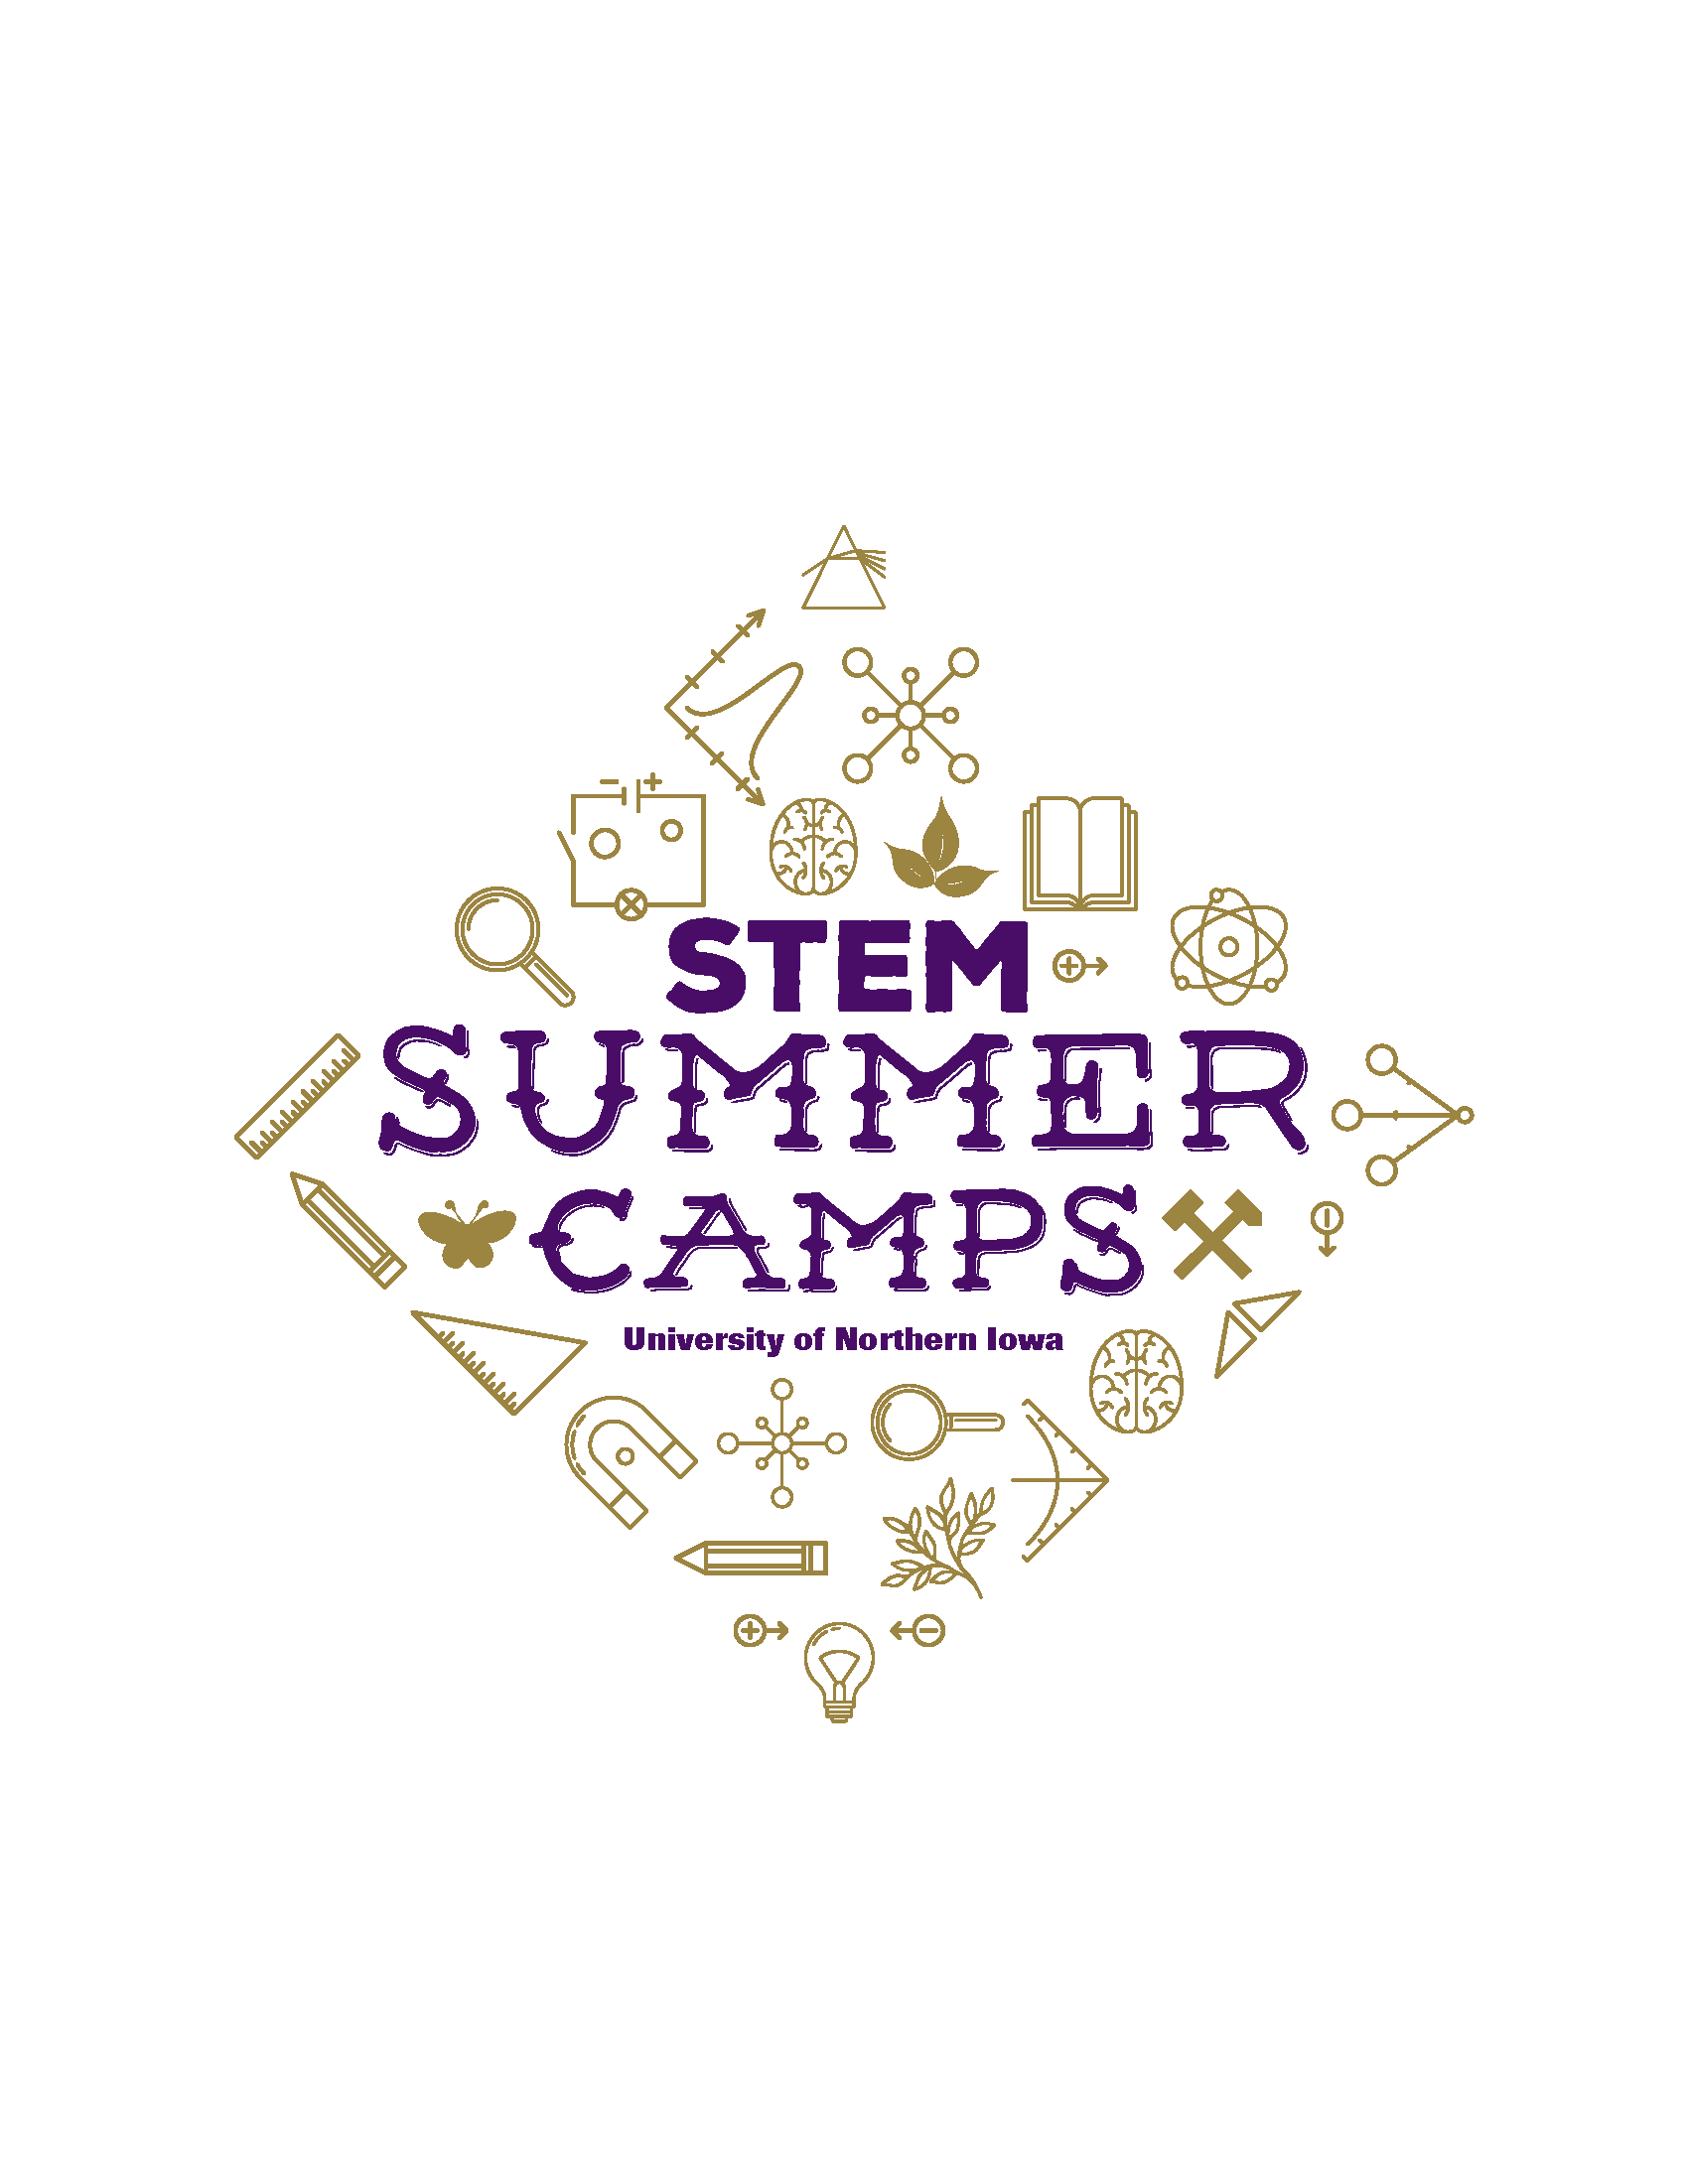 UNI STEM Camps 2016 Logo